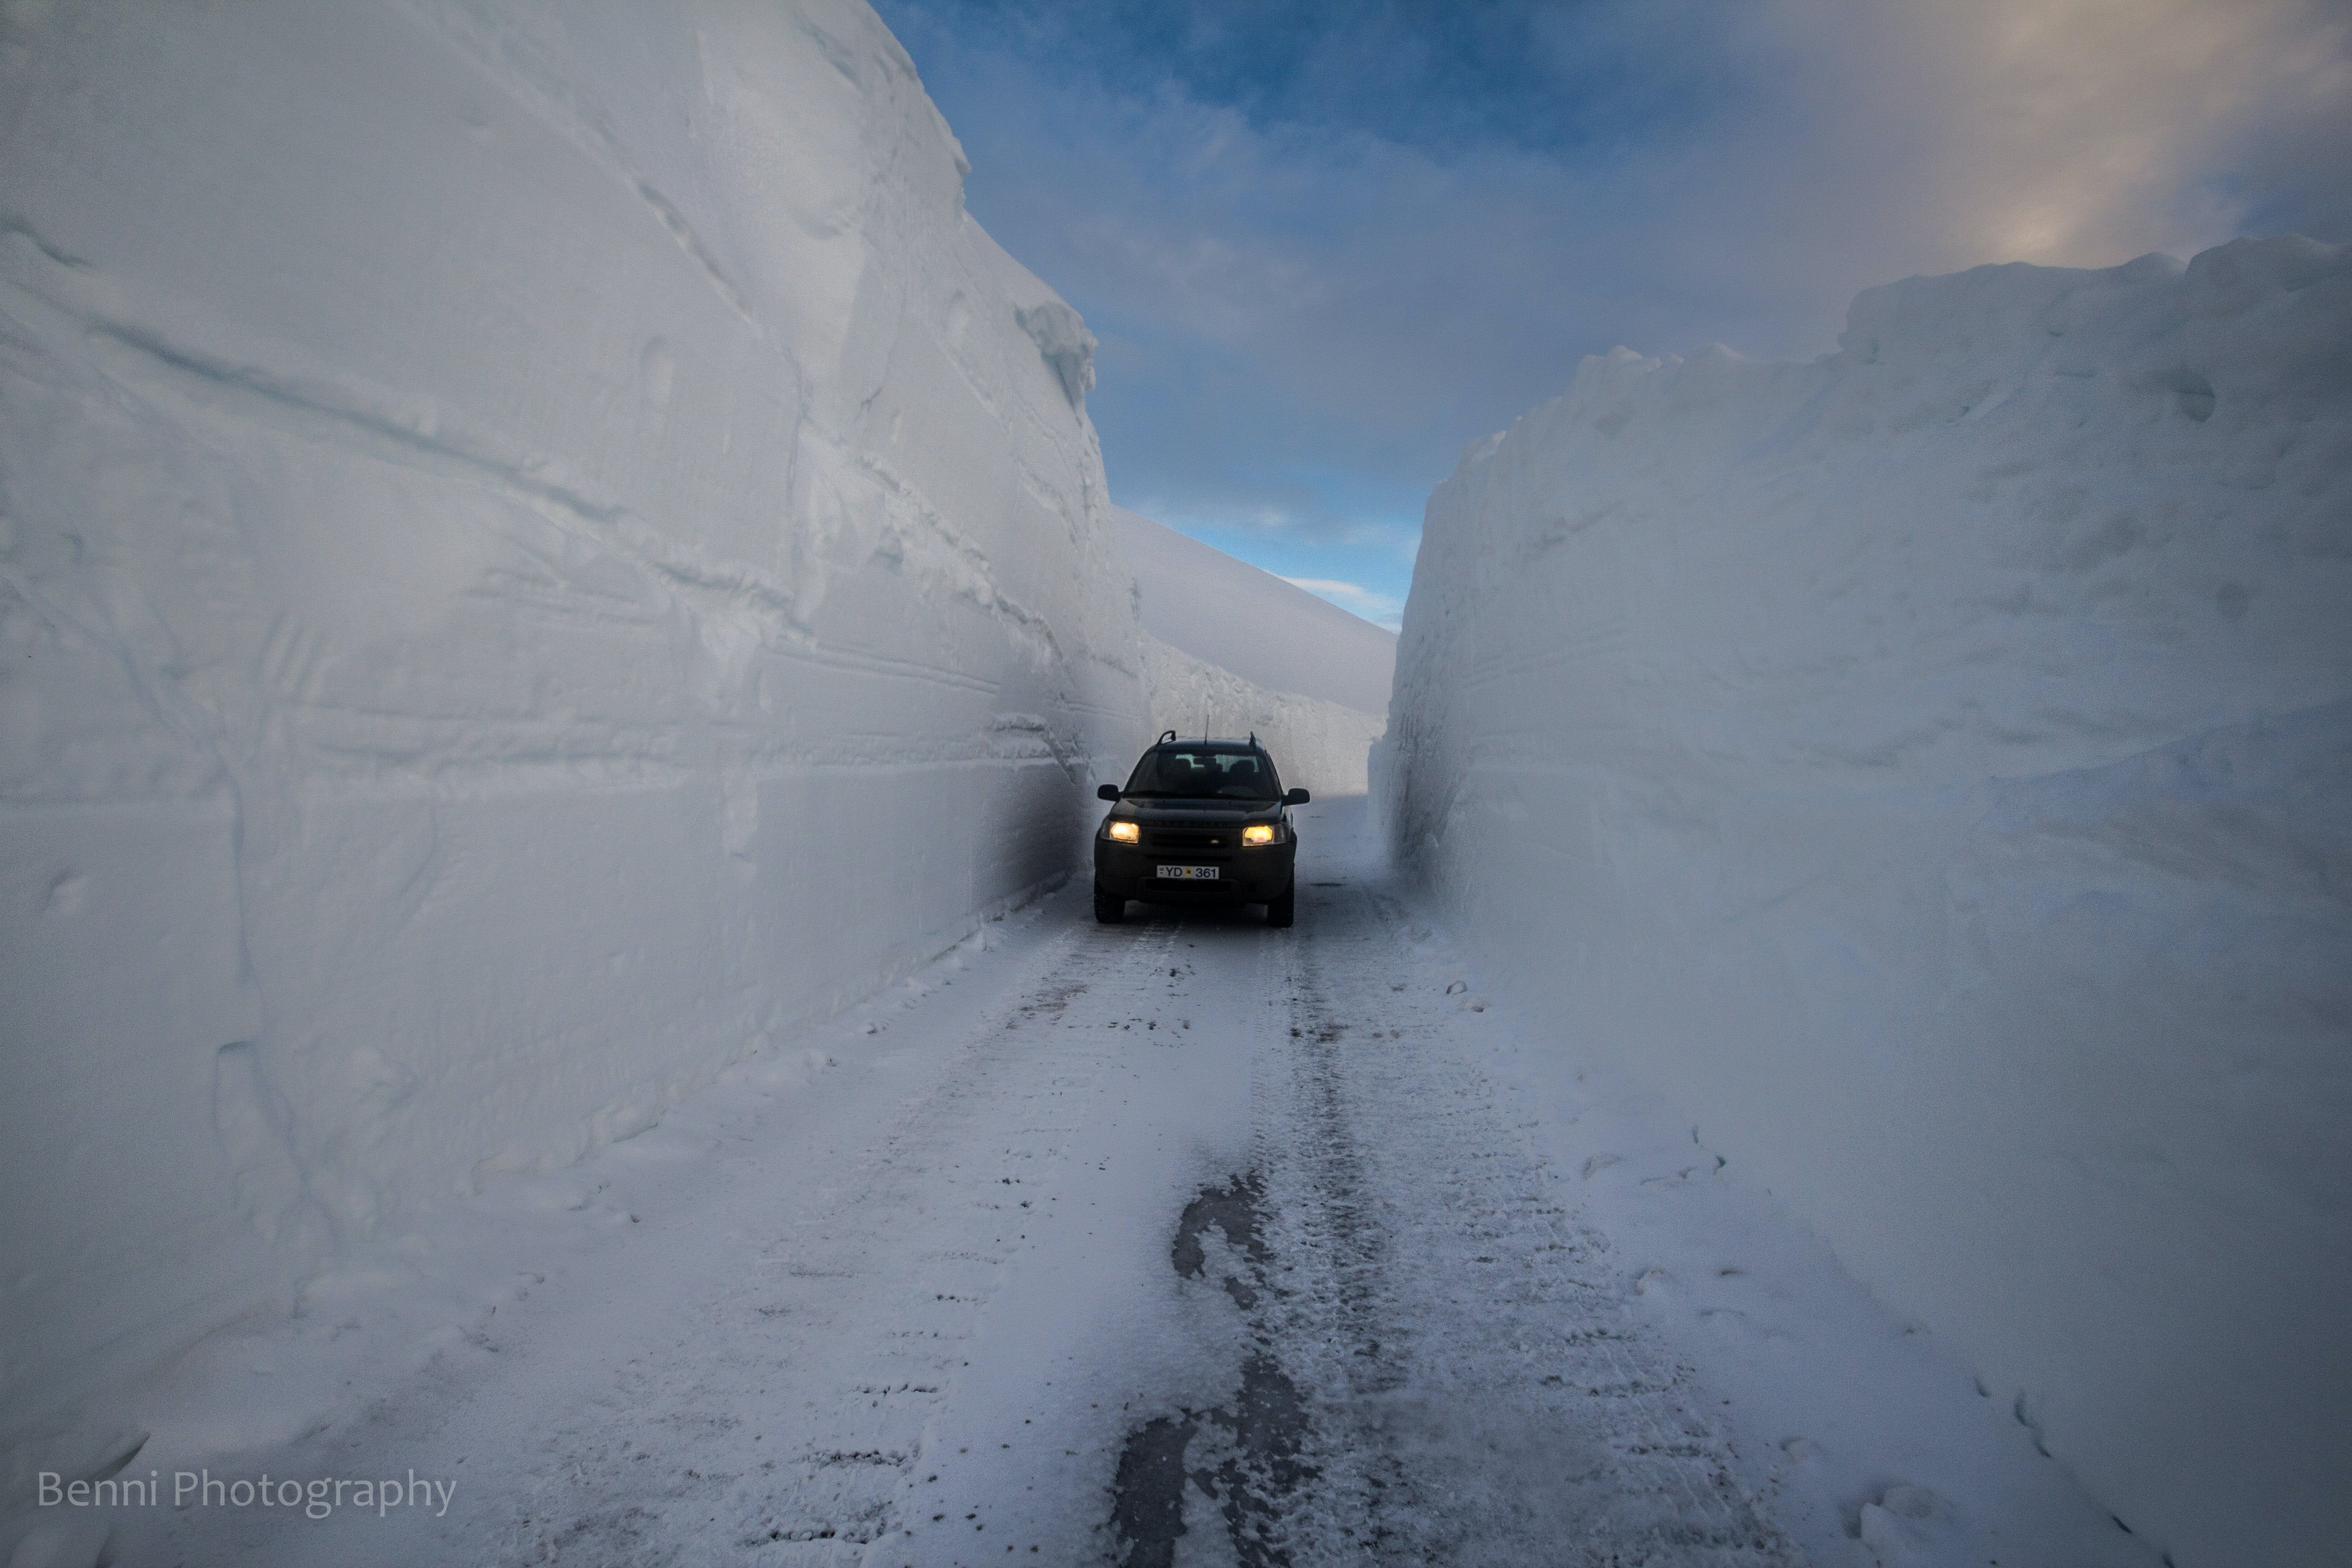 Snow drifts in winter, Westfjords, Iceland